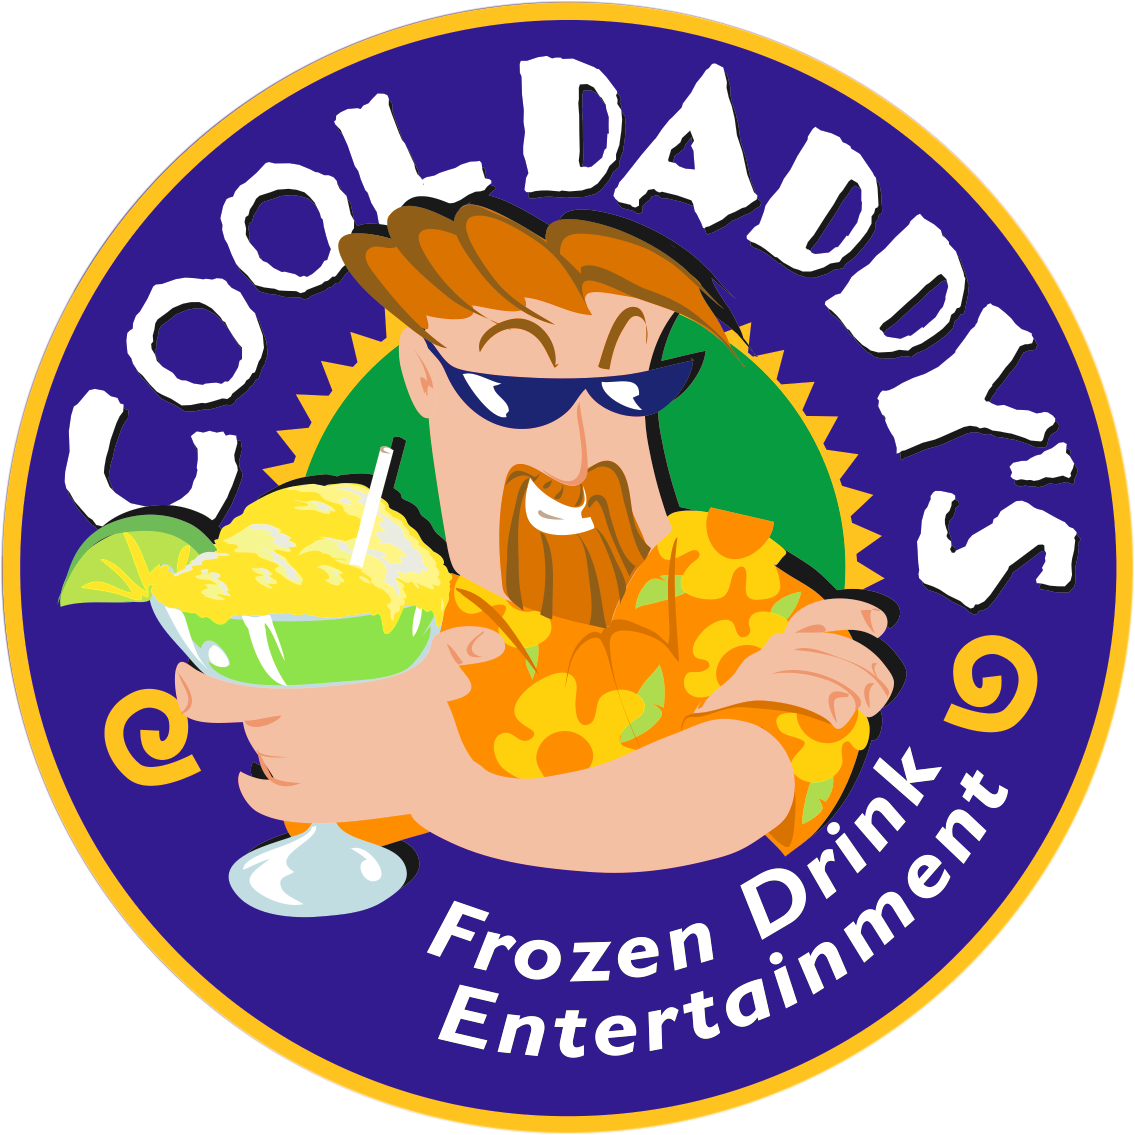 Cool Daddy's Frozen Drink Entertainment